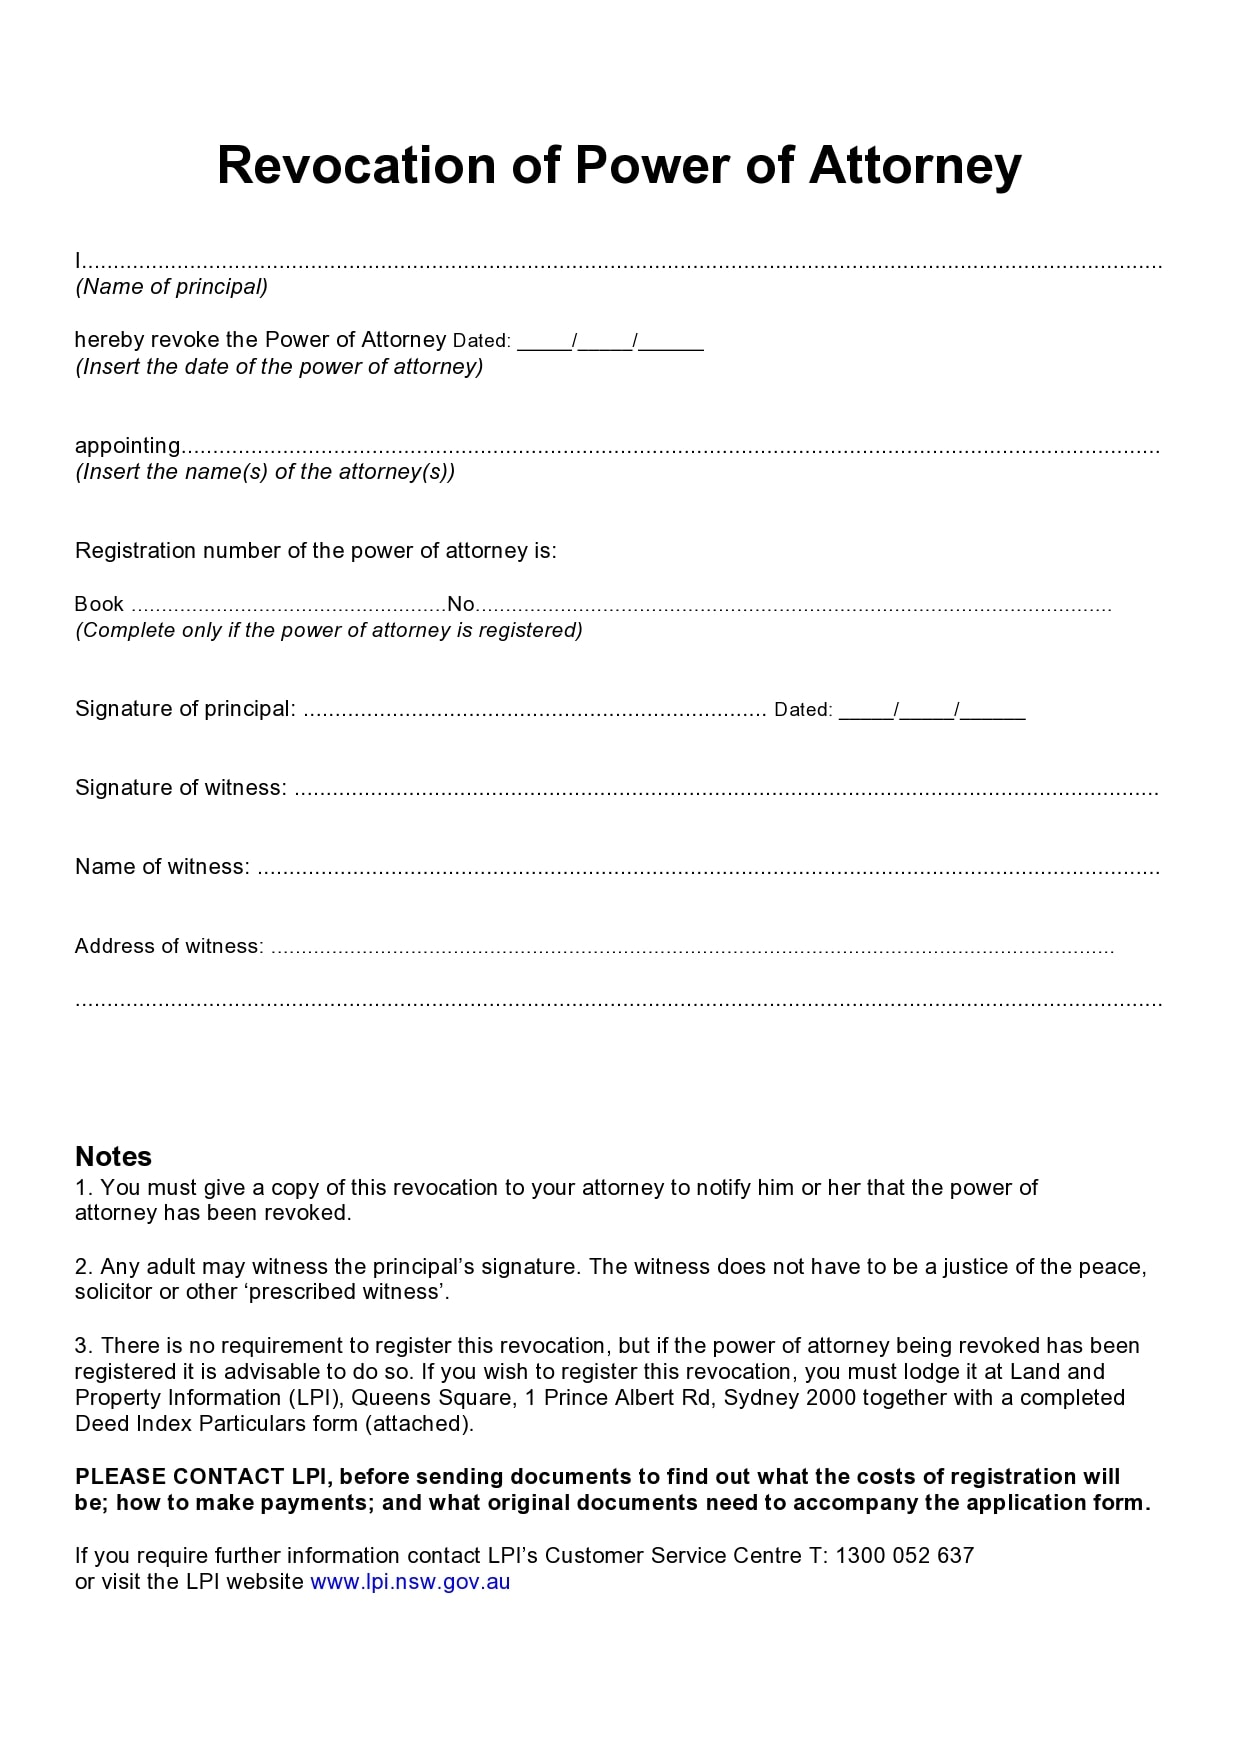 power of attorney revocation form 15